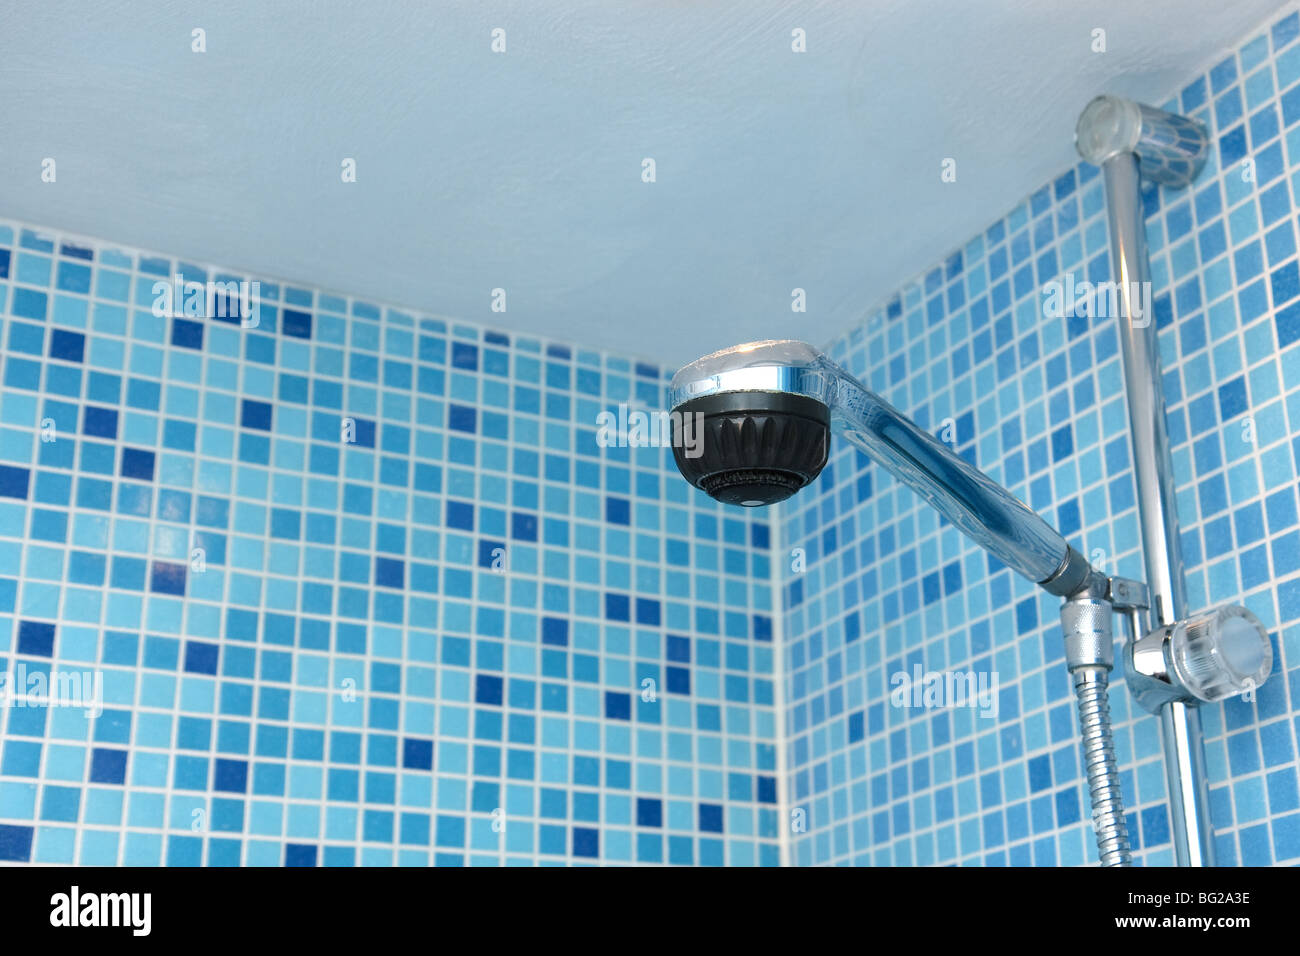 shower head in bathroom of blue mosaic tiles Stock Photo: 27096706 ...